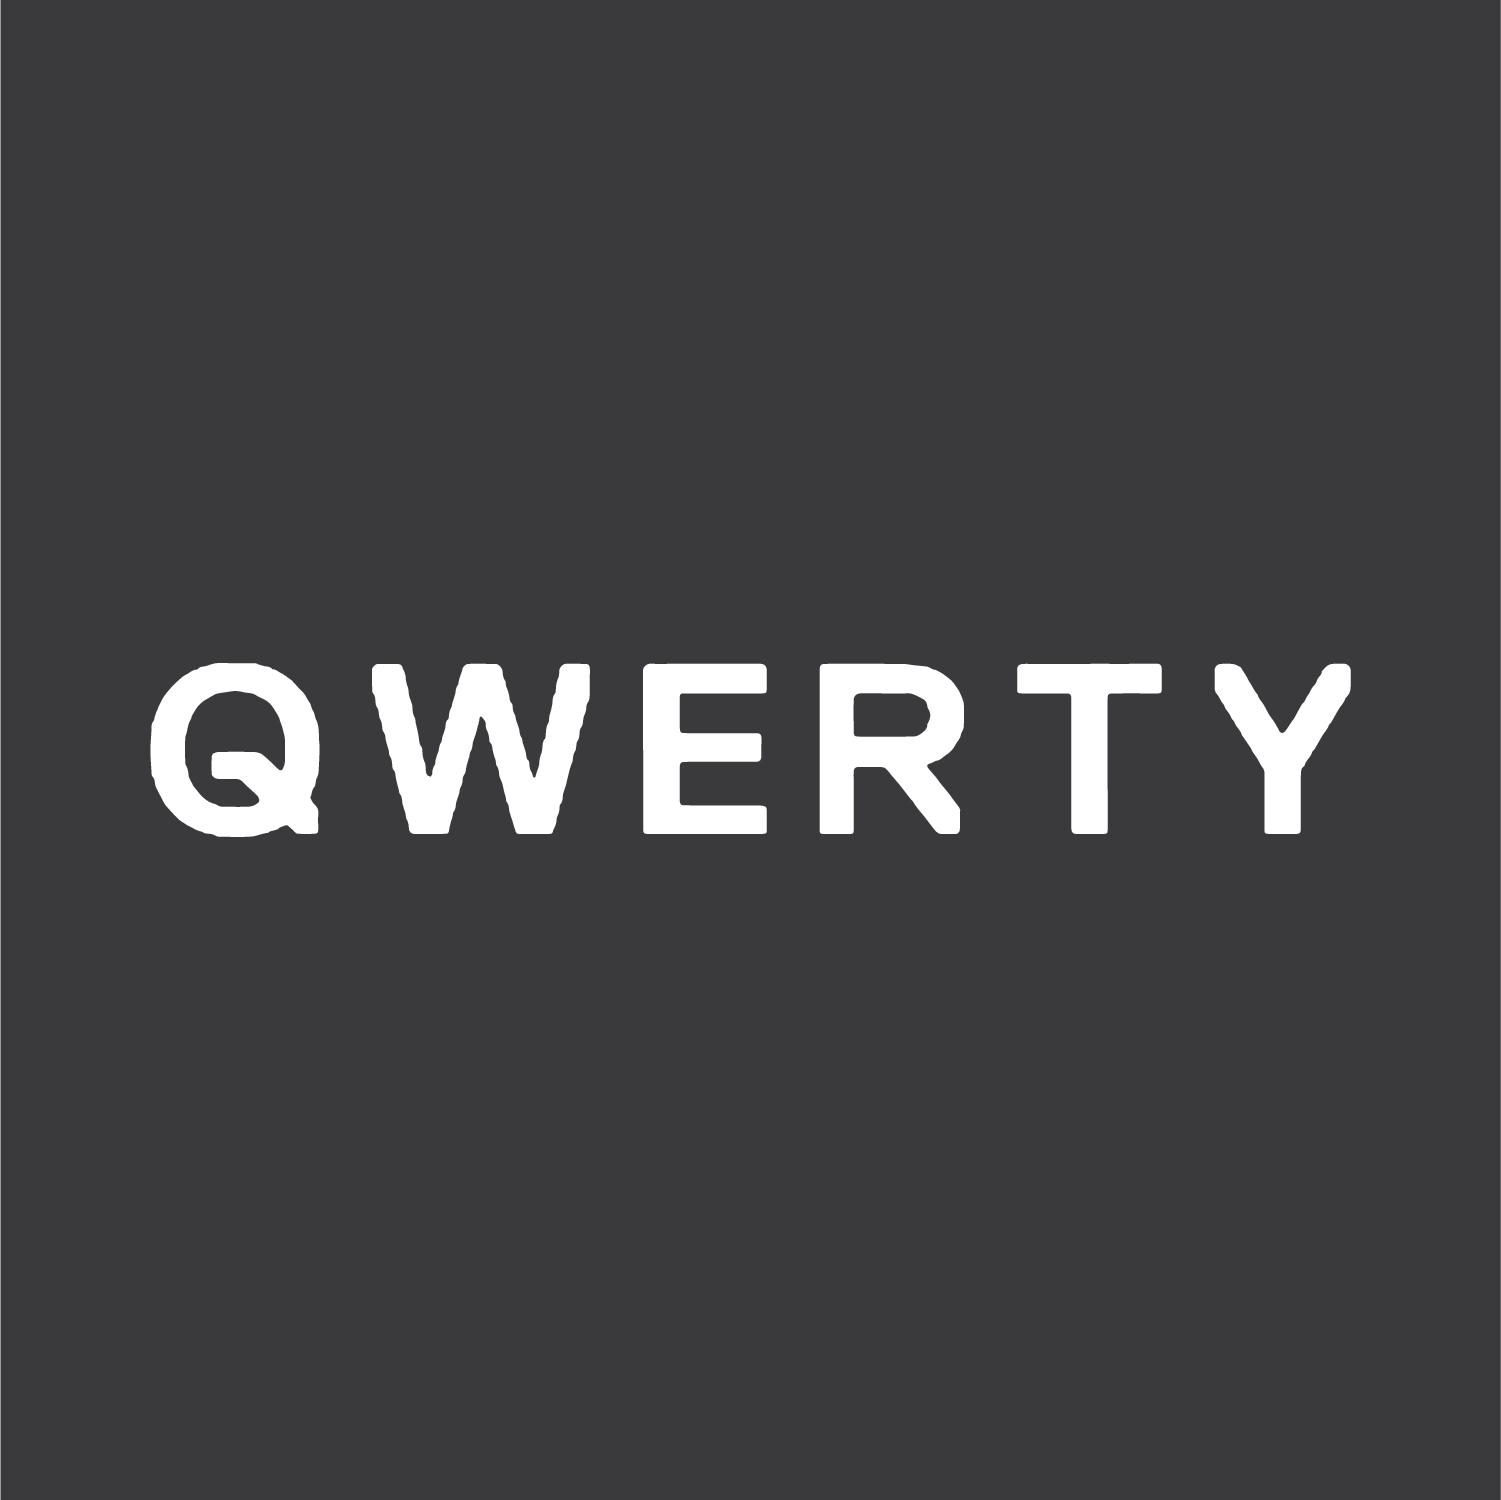 Sorry, QWERTY is not a Migo.